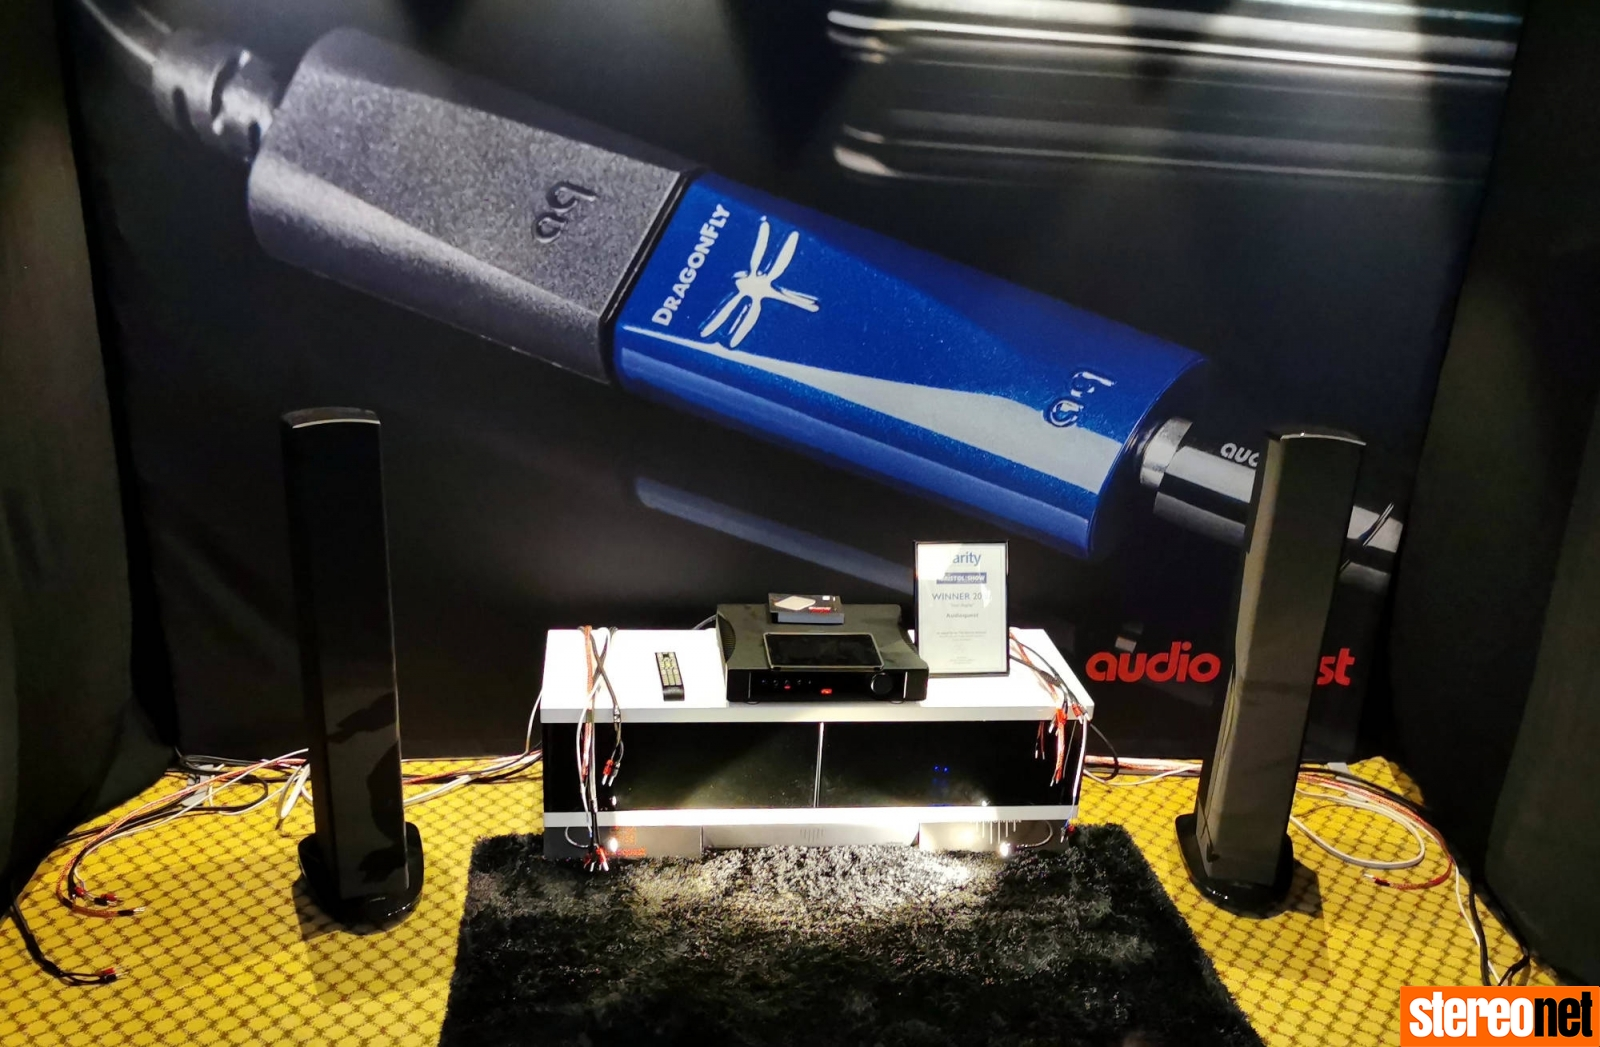 Audioquest Bristol hifi show 2020 report